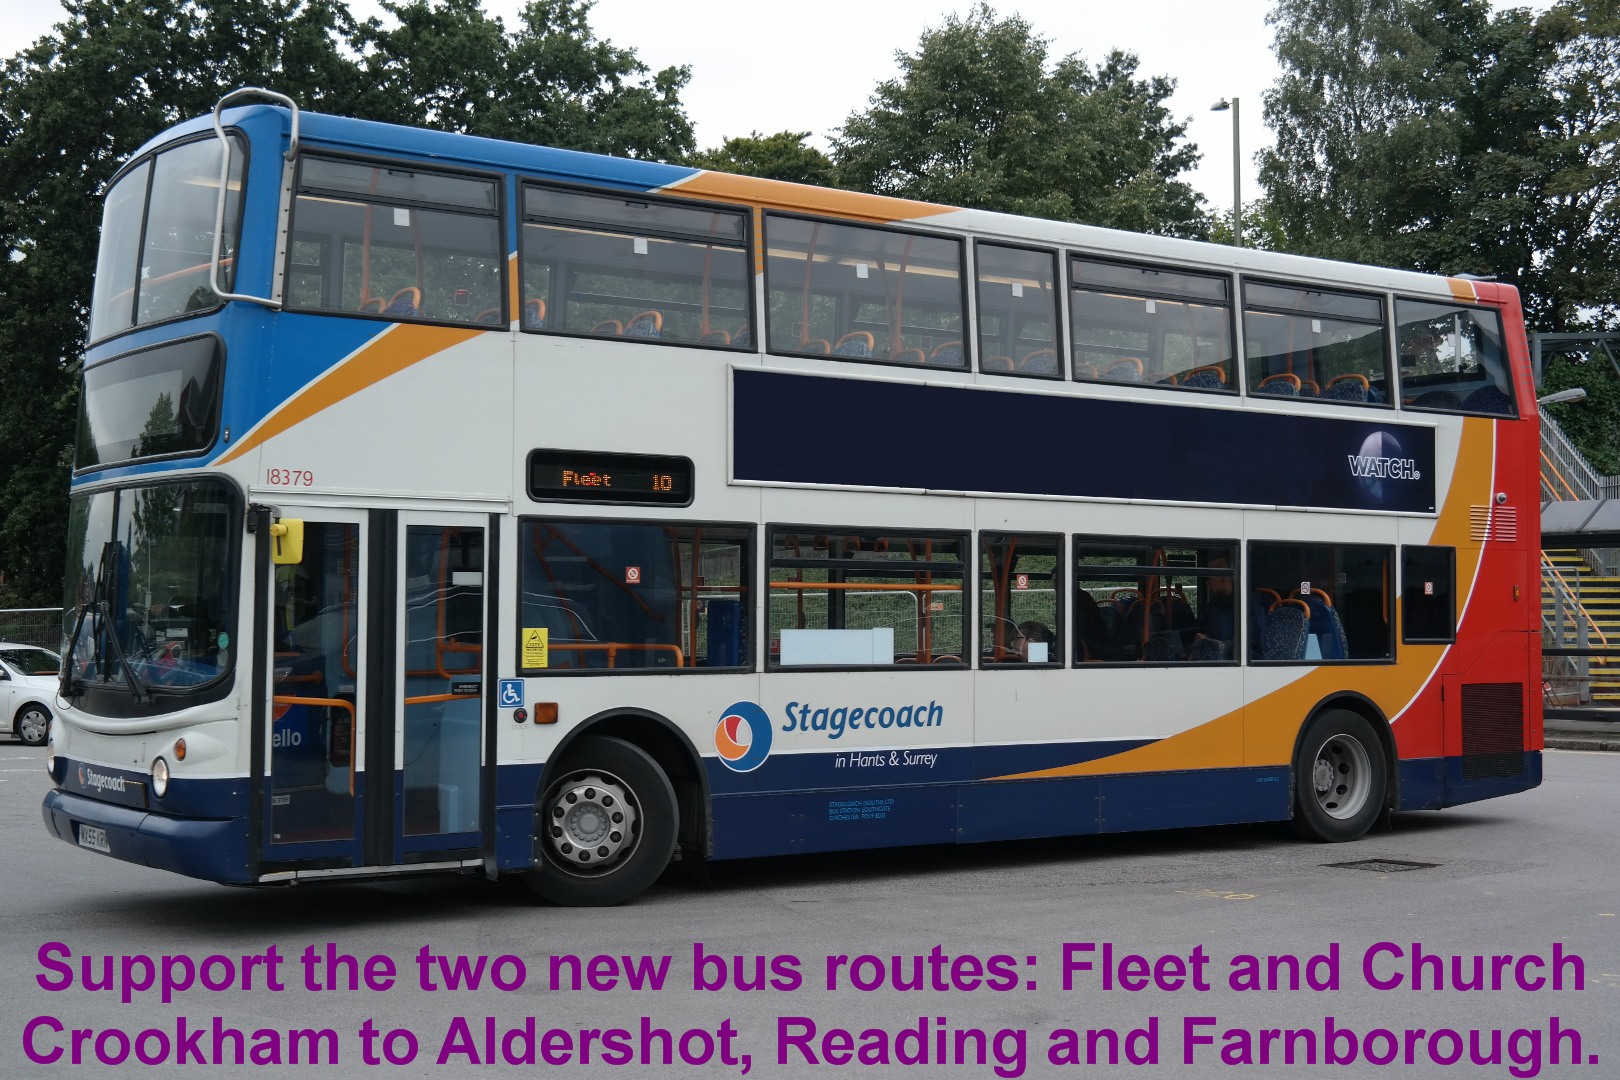 Support the two new bus routes: Fleet and Church Crookham to Aldershot, Reading and Farnborough.